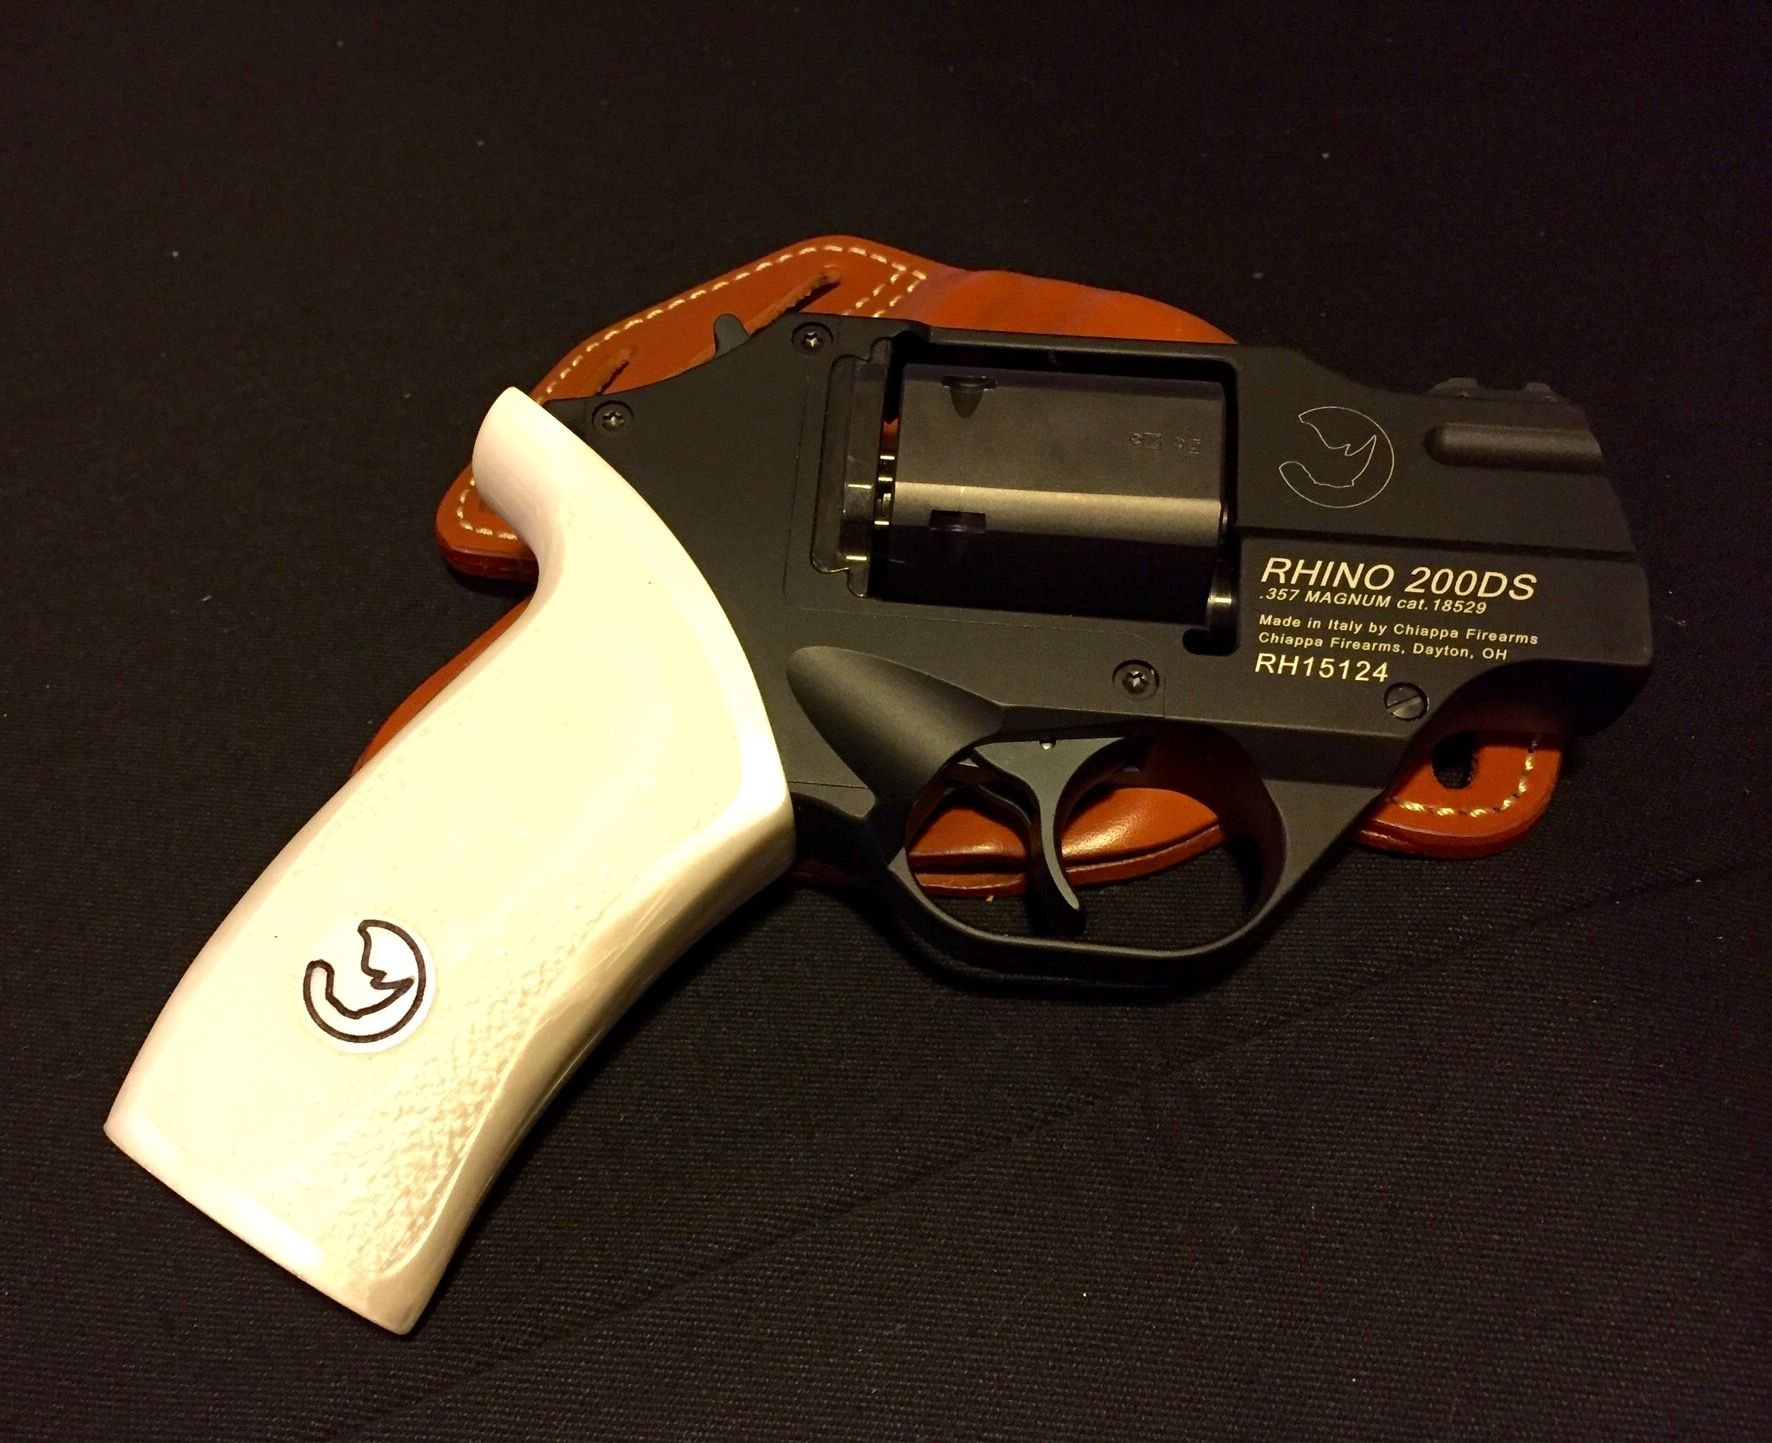 Chiappa Rhino 200ds With Large Size Grip From 60ds Custom Firearms And Blades Pinterest Guns Weapons And Gun Holster